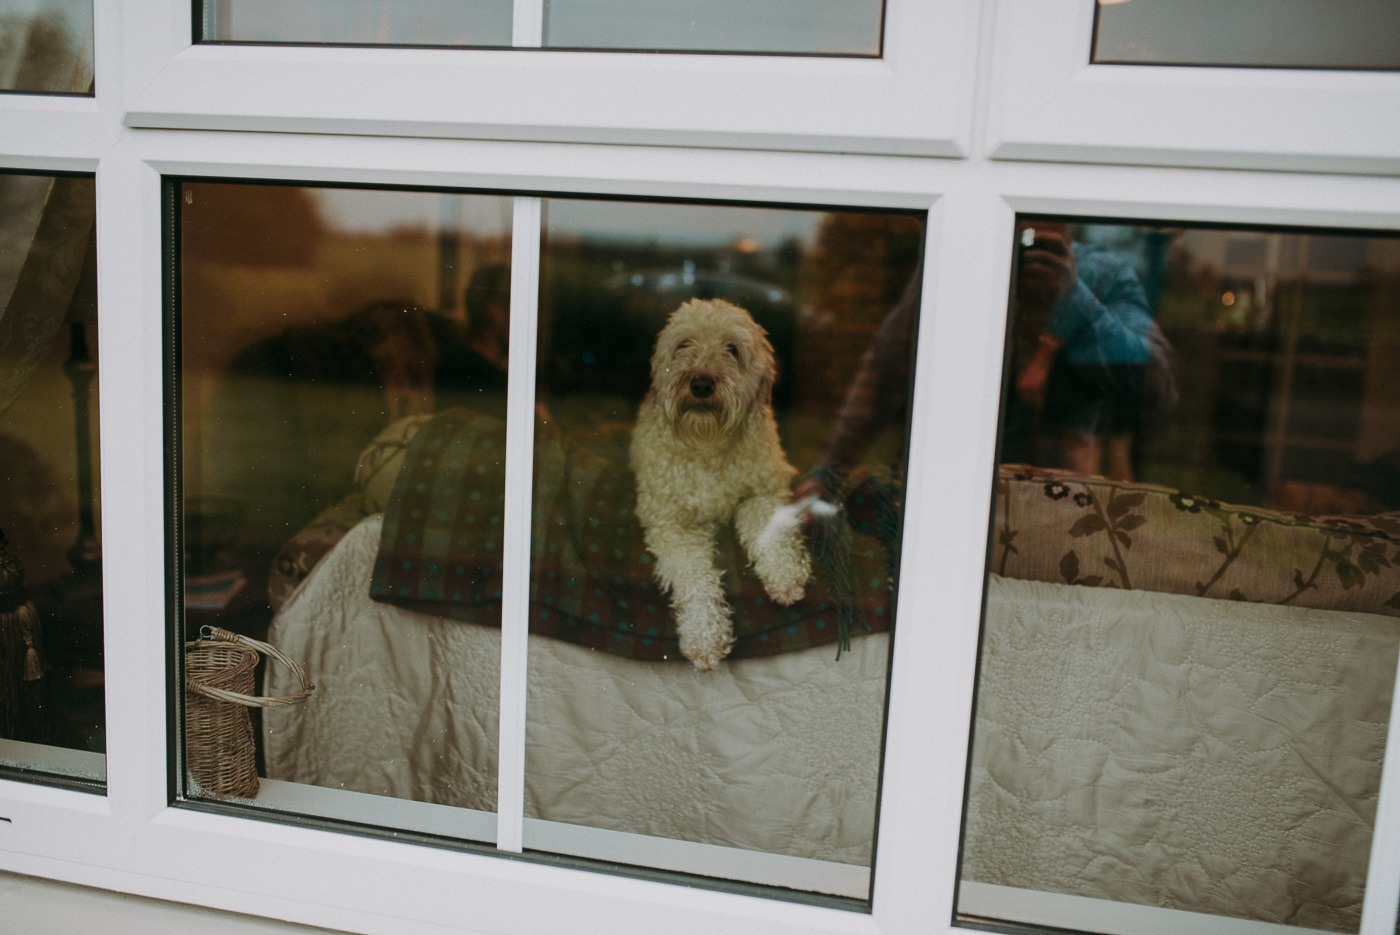 A dog is looking out of a window